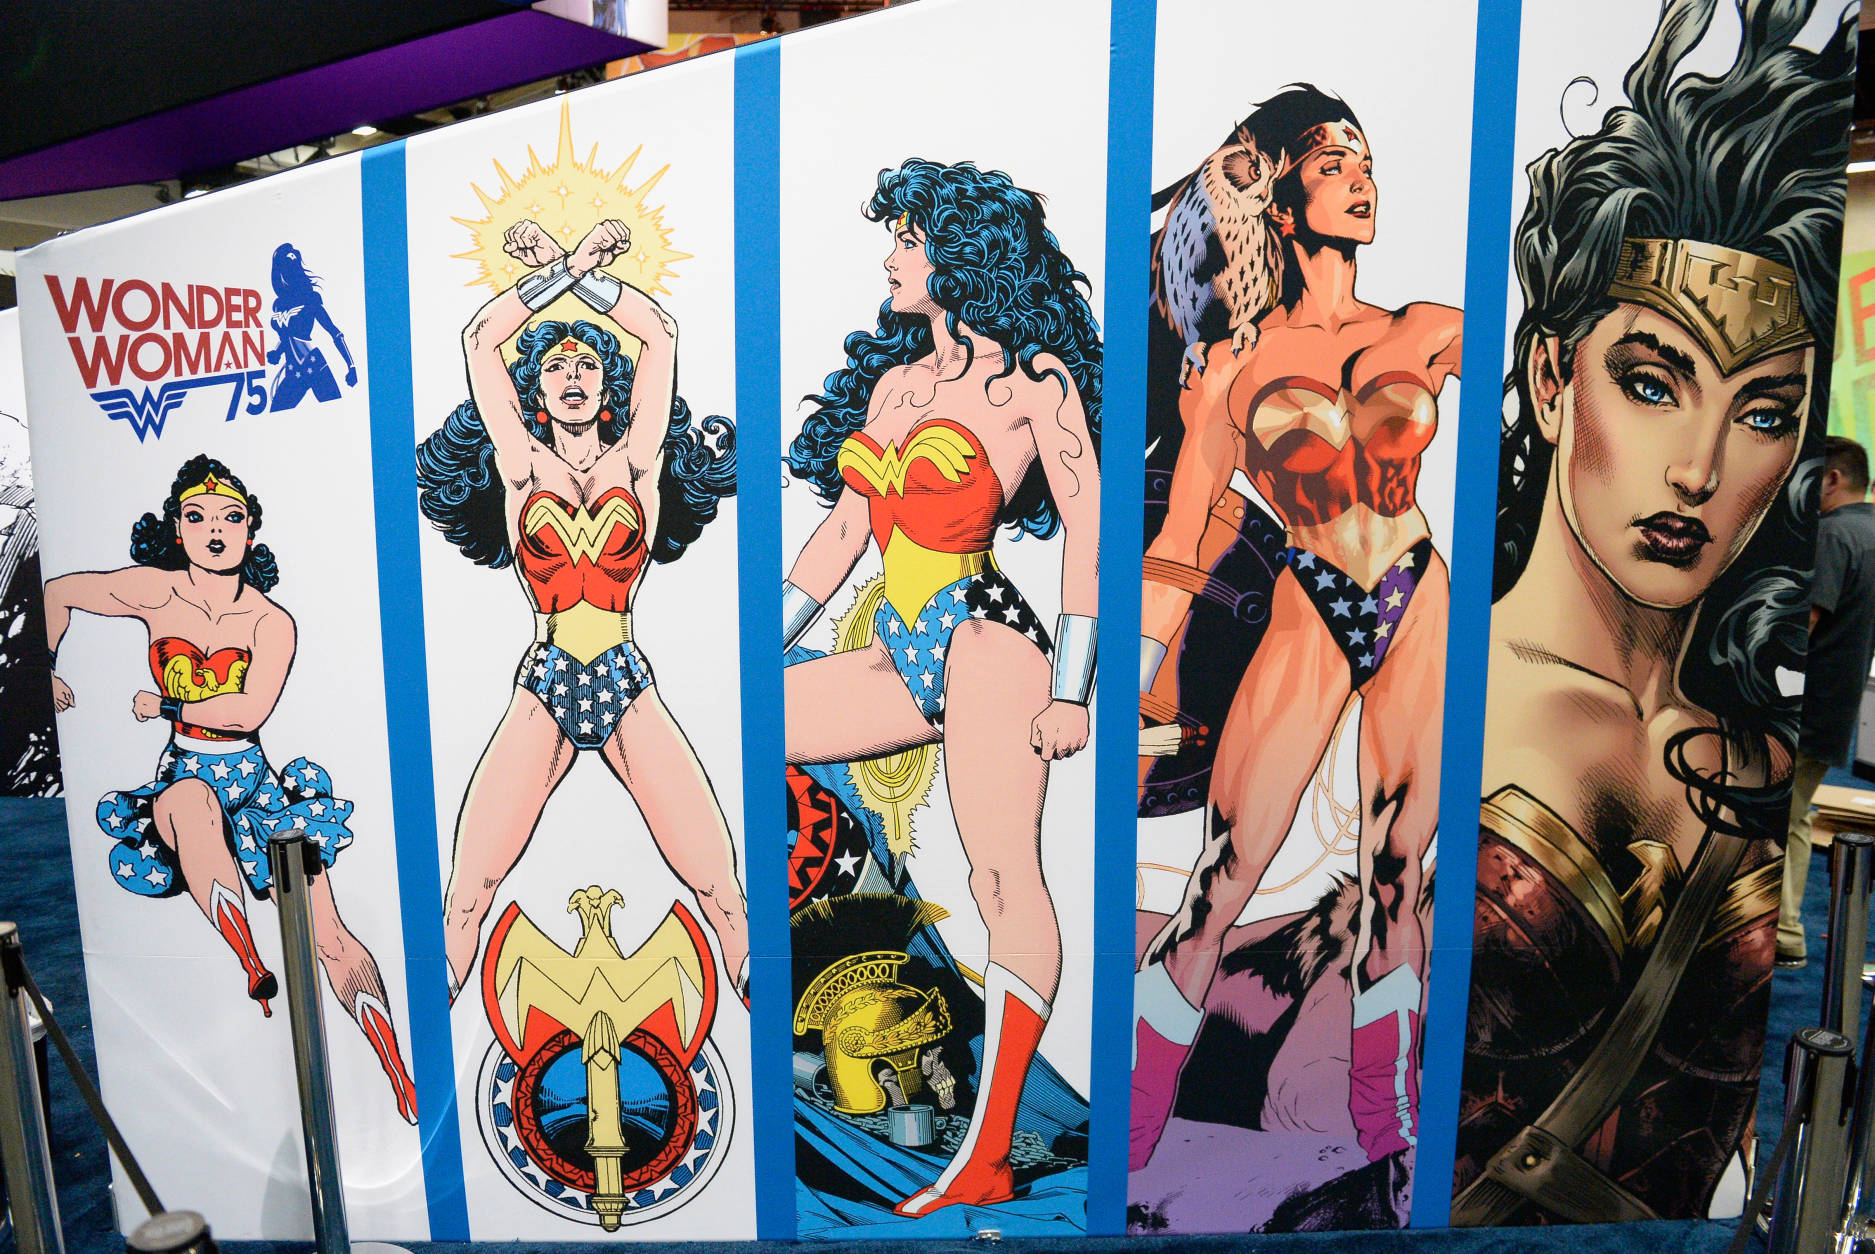 SAN DIEGO, CA - JULY 20:  Wonder Woman display at Comic-Con International 2016 preview night on July 20, 2016 in San Diego, California.  (Photo by Matt Cowan/Getty Images)